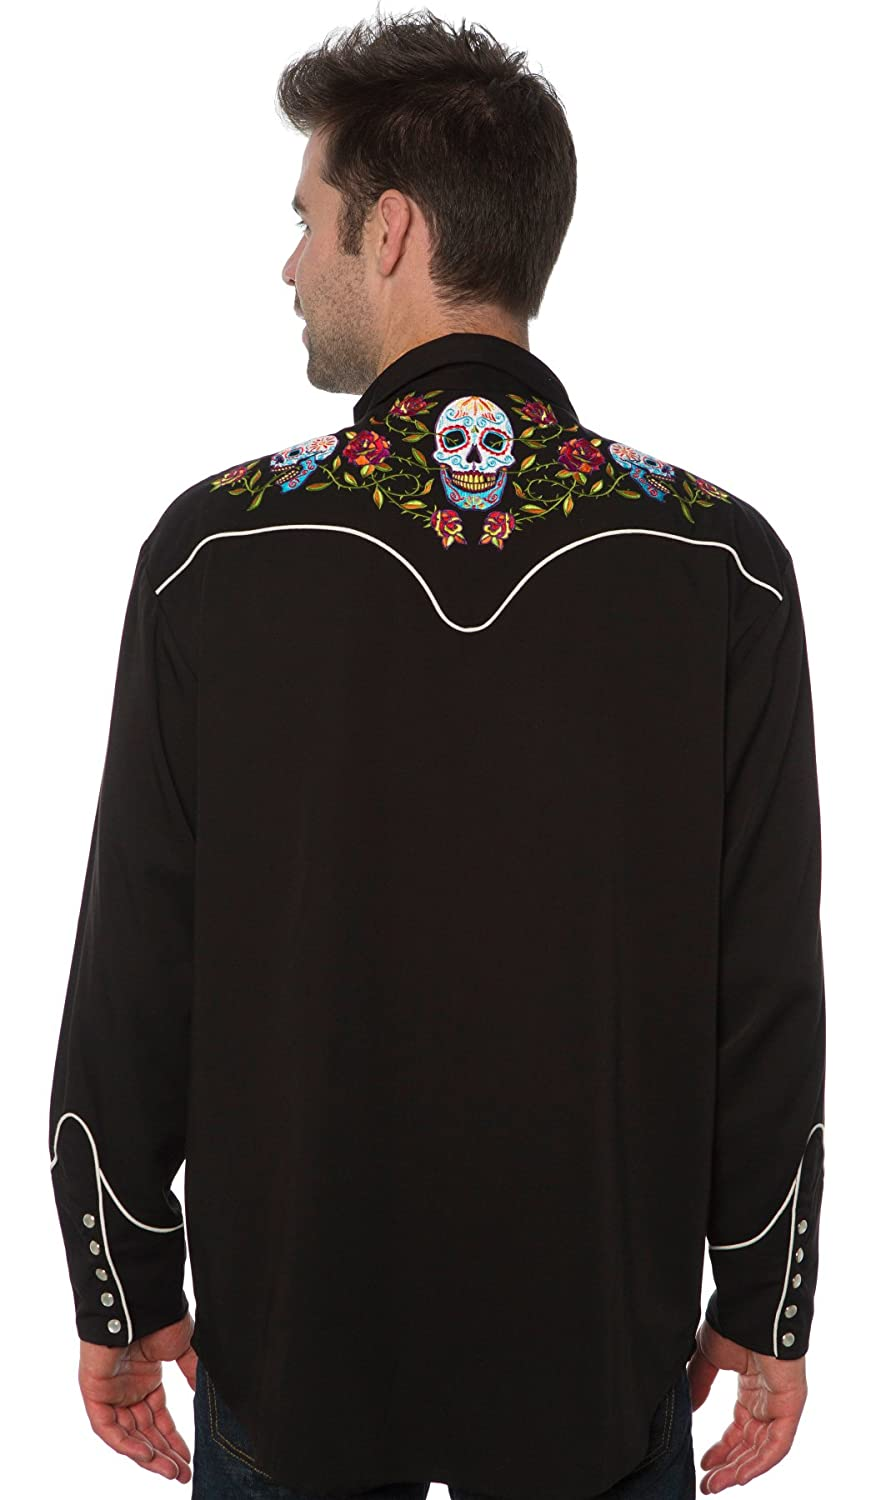 1950s Mens Shirts | Retro Bowling Shirts, Vintage Hawaiian Shirts Bennys Day of the Dead Western Shirt $49.99 AT vintagedancer.com